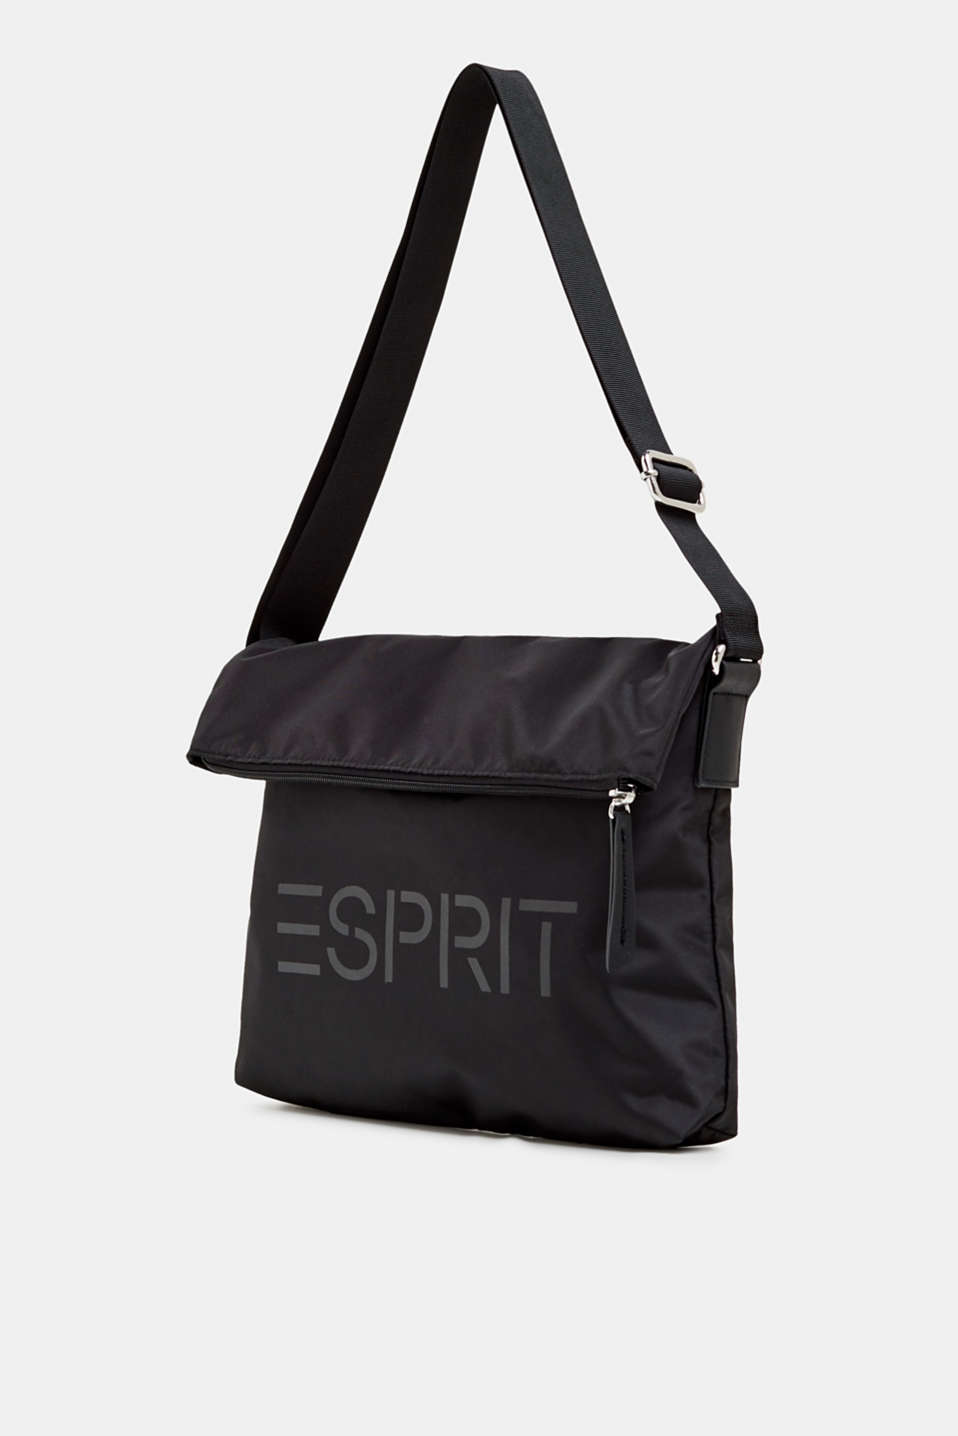 Nylon bag with a logo and adjustable clasp, BLACK, detail image number 4